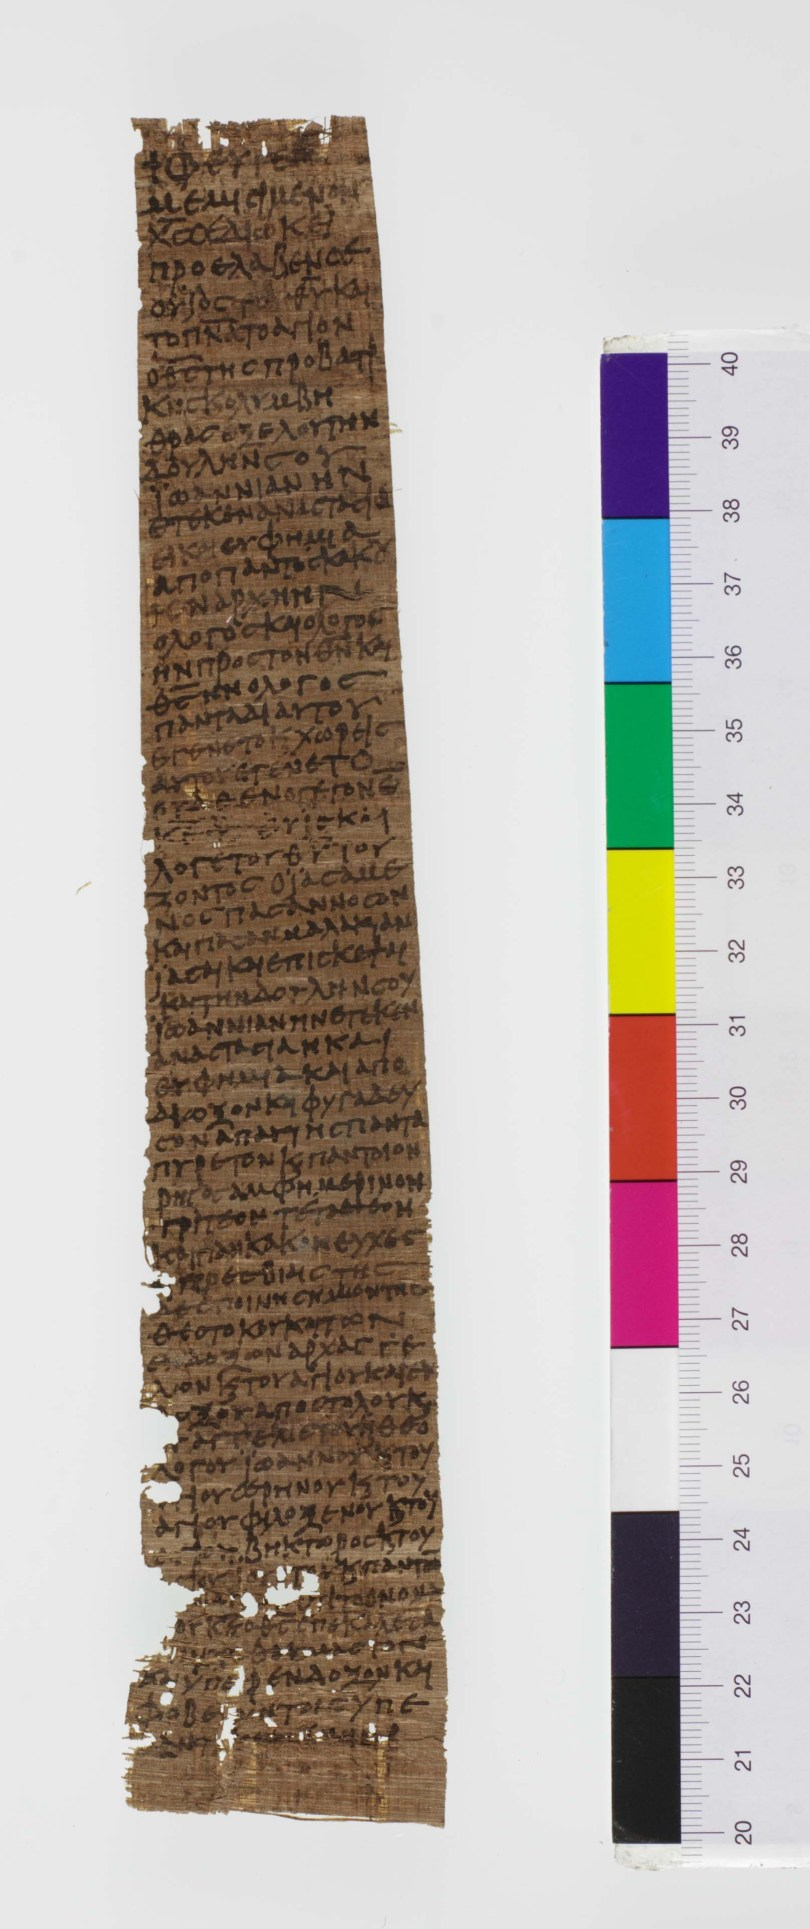 Image of ancient papyrus.